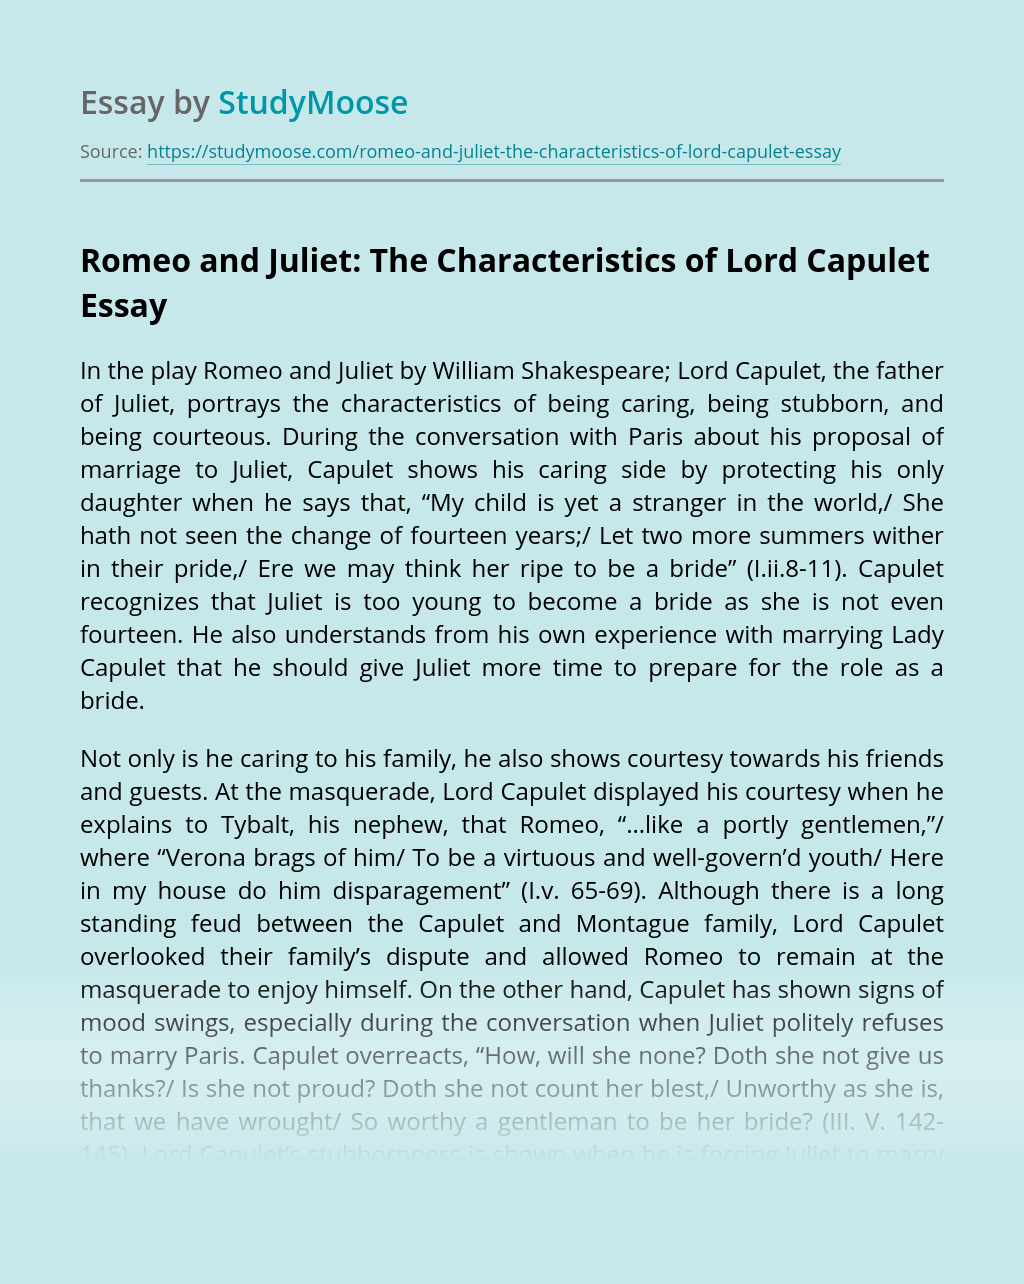 Romeo and Juliet: The Characteristics of Lord Capulet